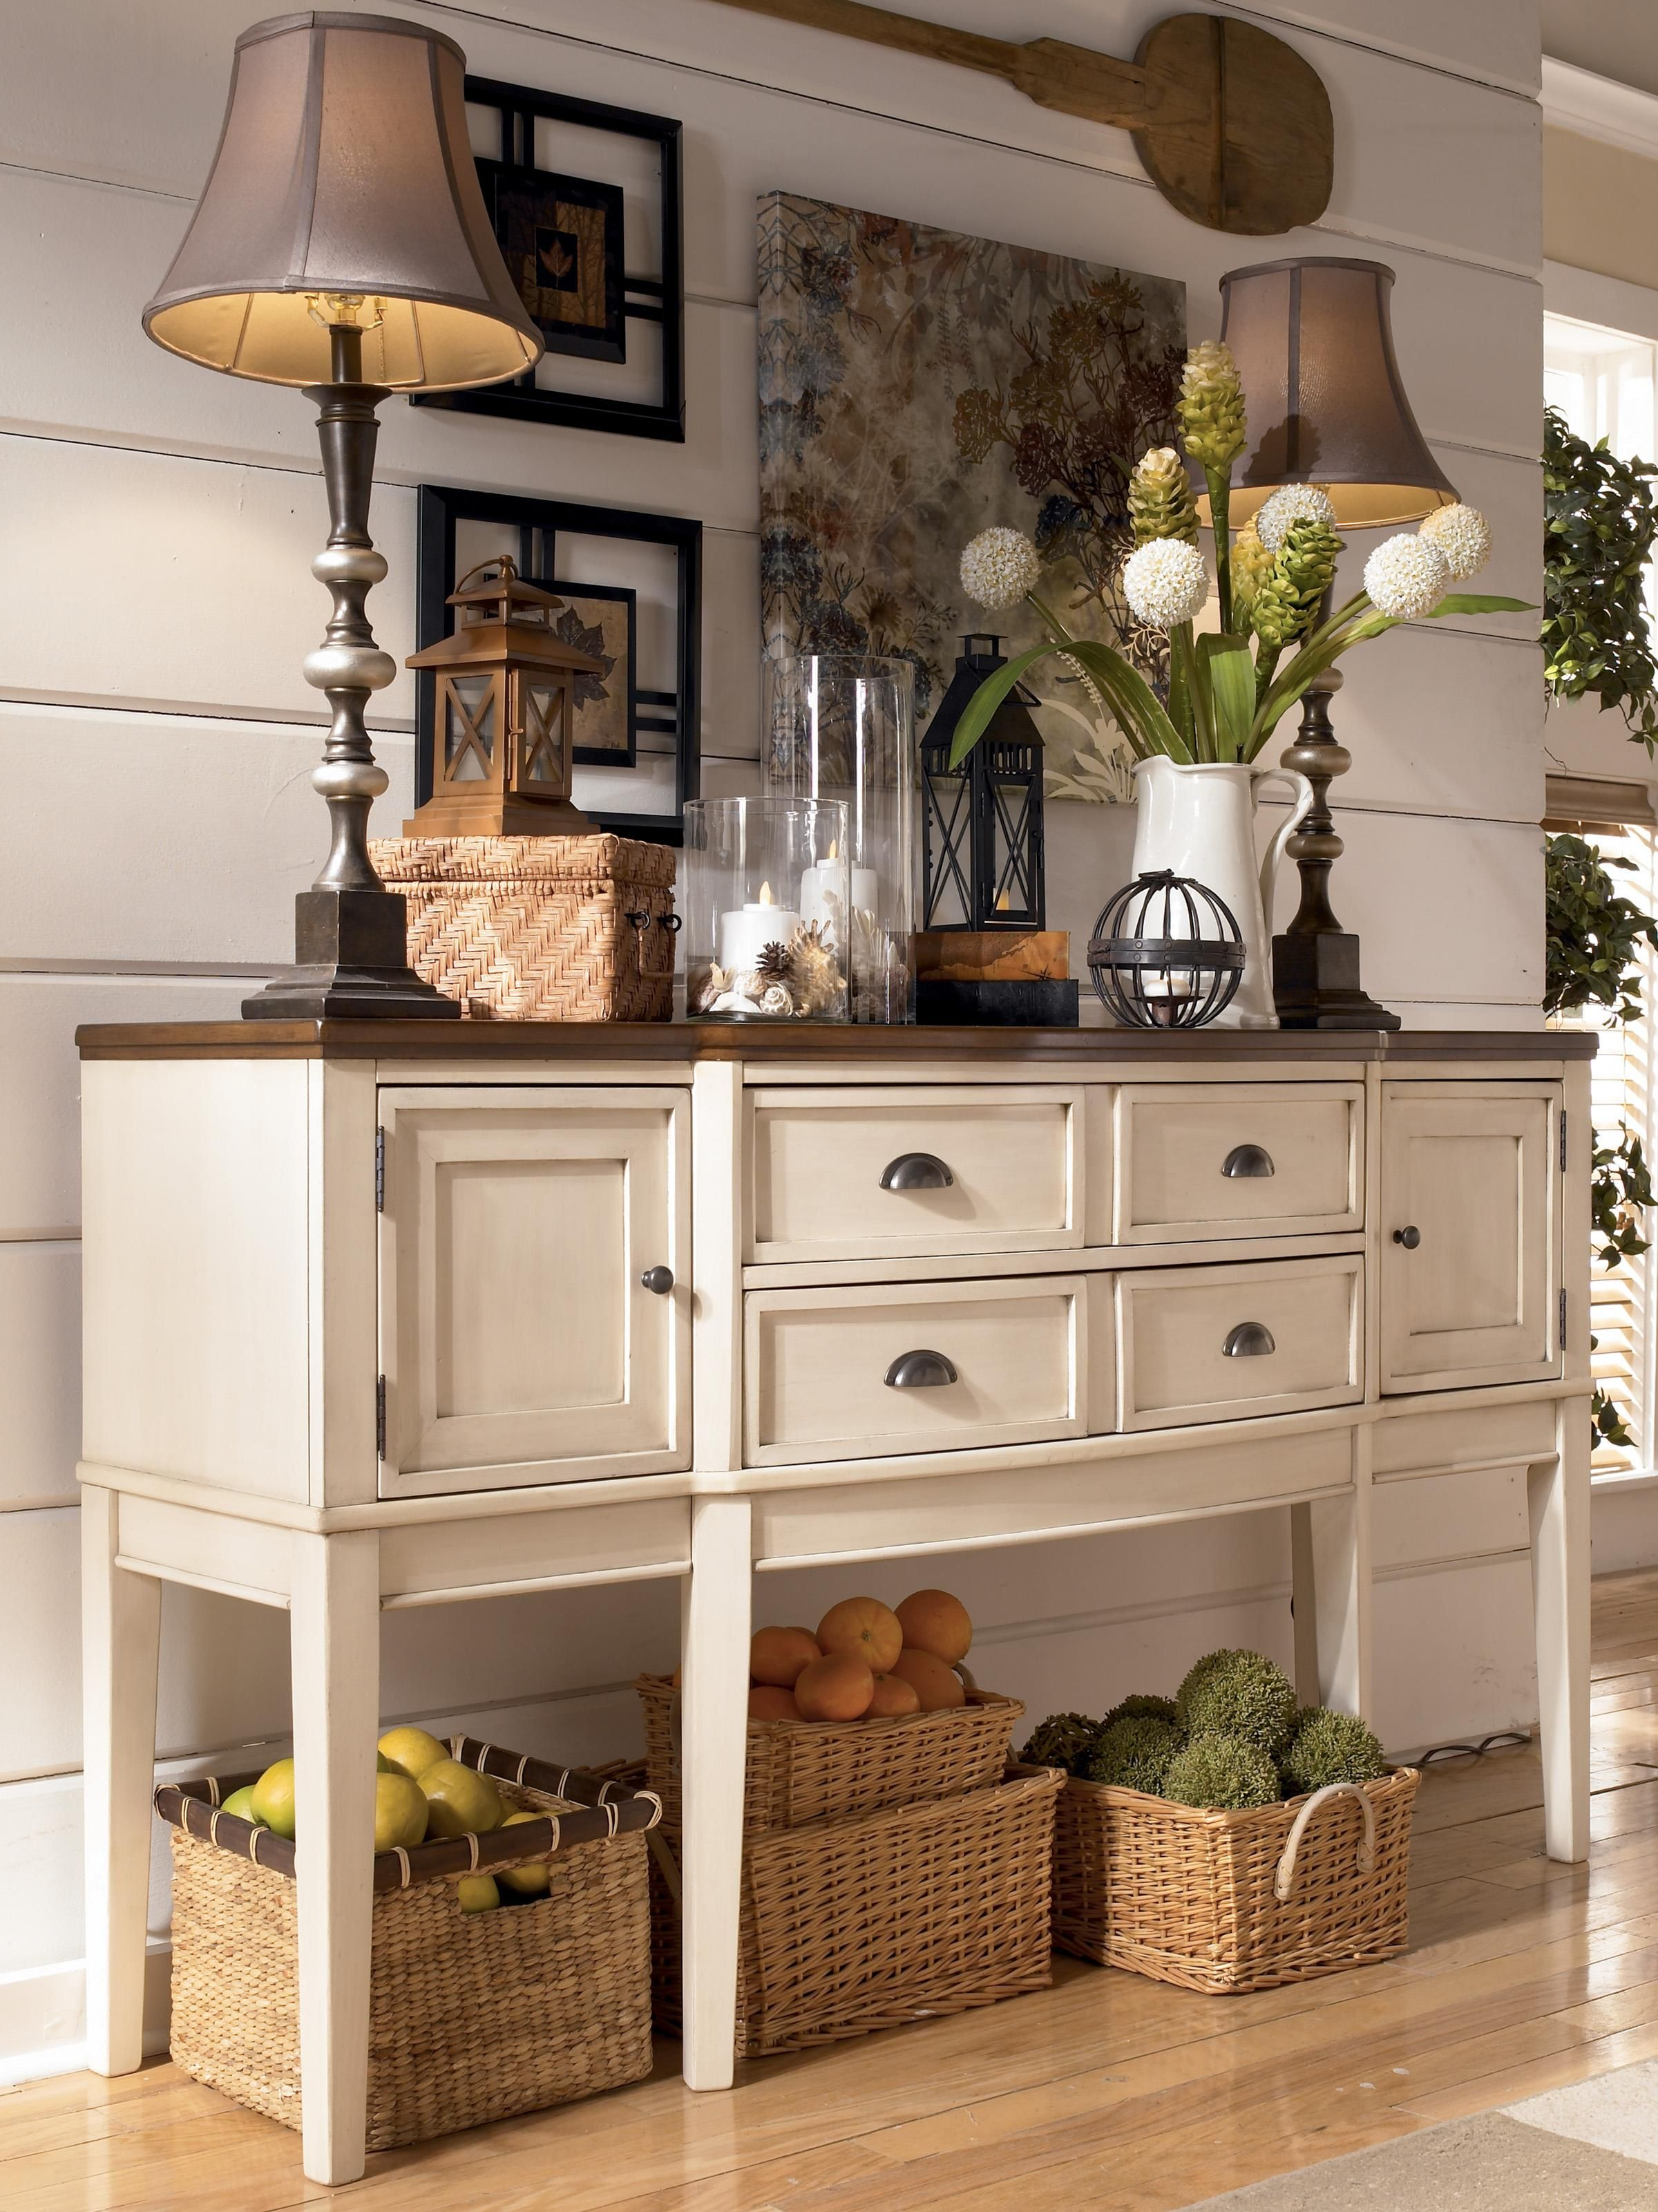 Pin By Interior Delights On Dining Inspiration Buffet Decor Dining Room Server Home Decor